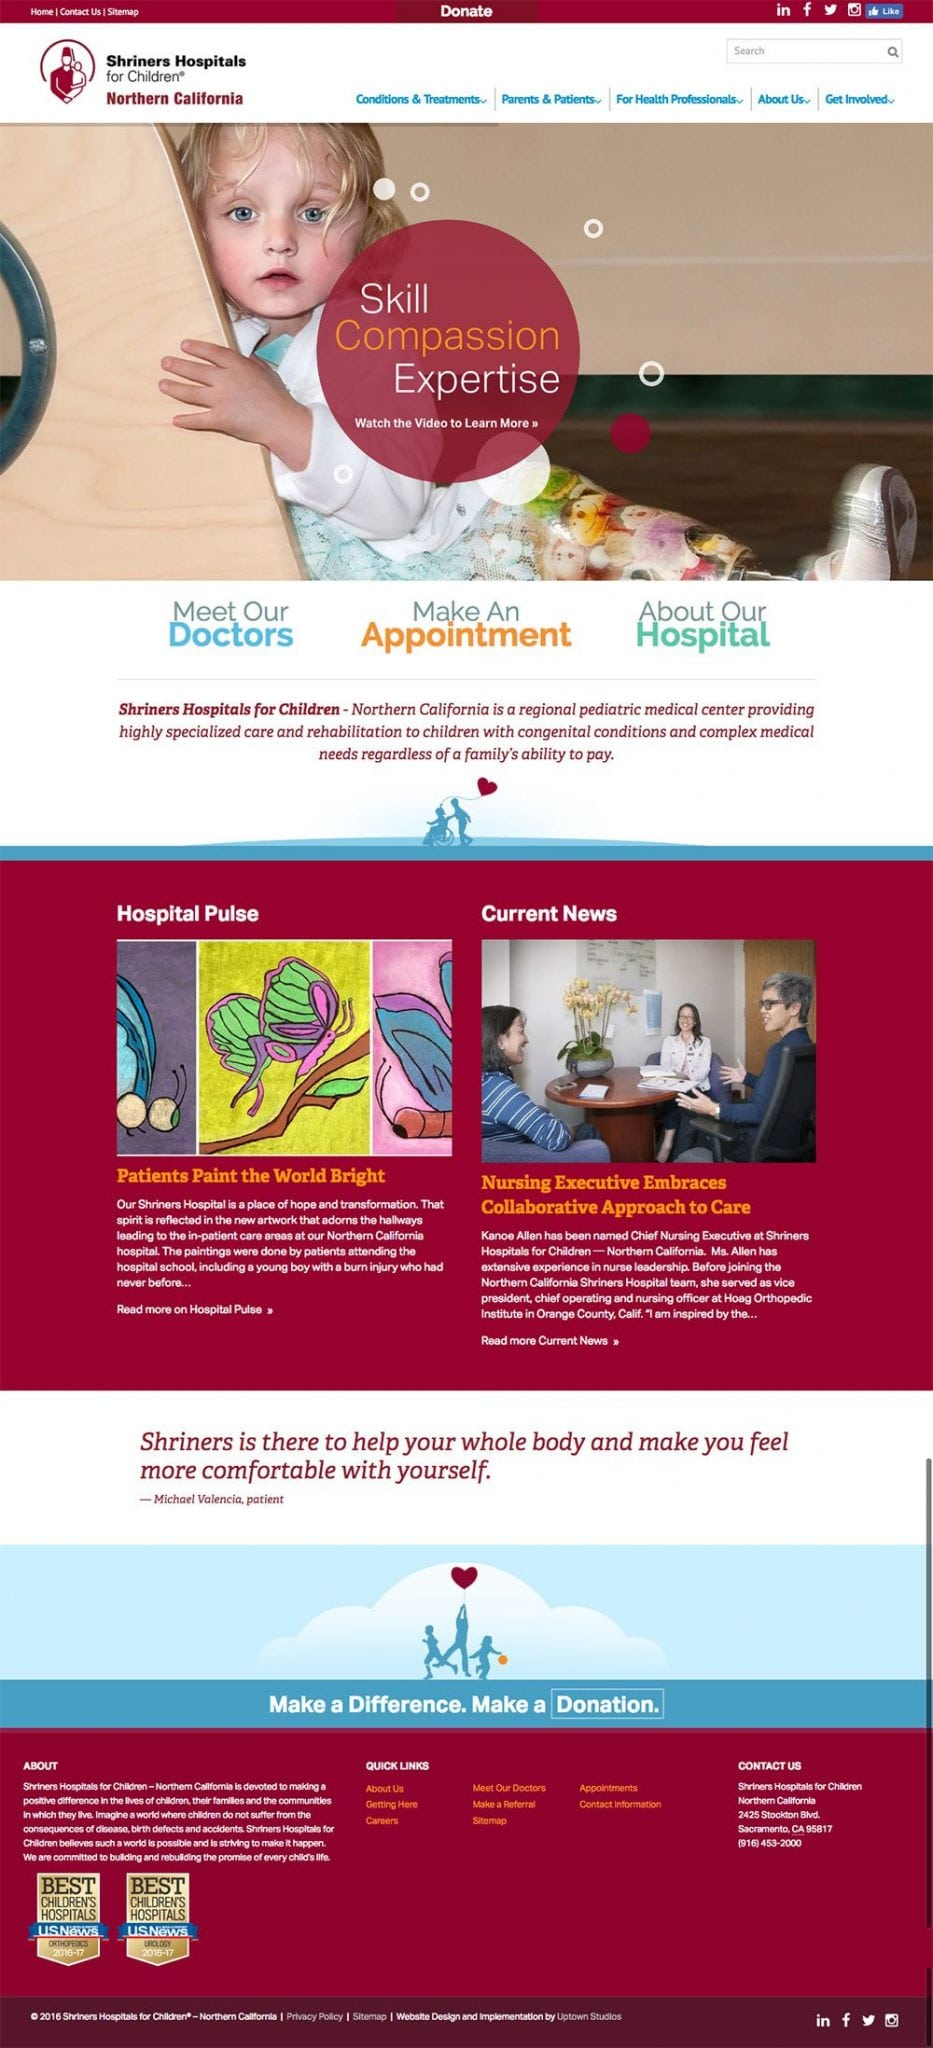 A screenshot of the Shriner's Hospital home page